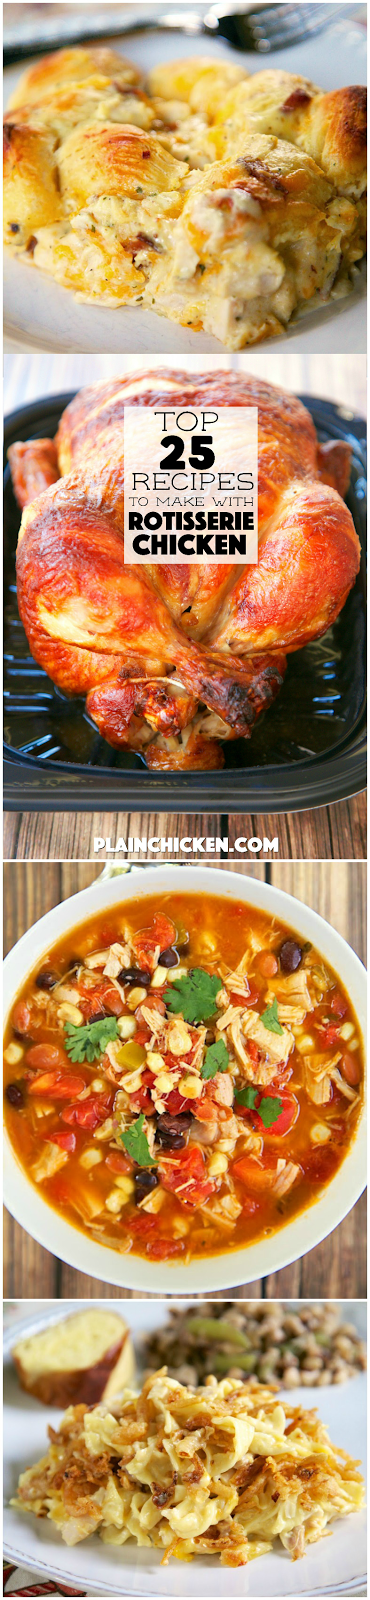 Top 25 Recipes to Make with Rotisserie Chicken - save time and money by using rotisserie chicken in casseroles and soups!